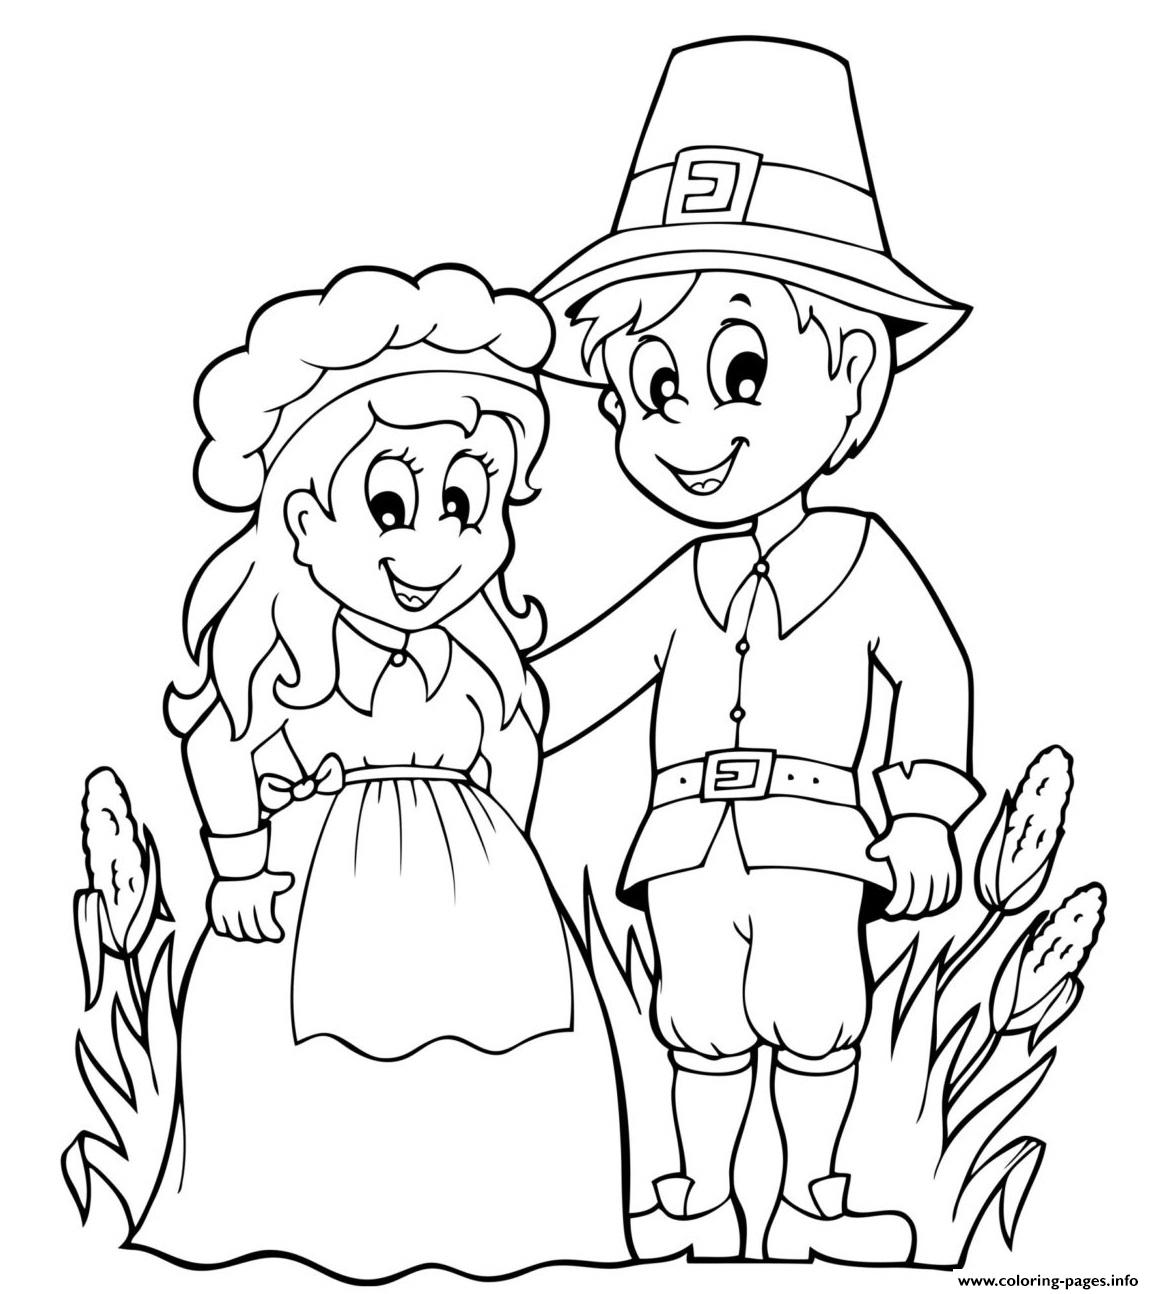 Pilgrim Couple For Thanksgiving coloring pages